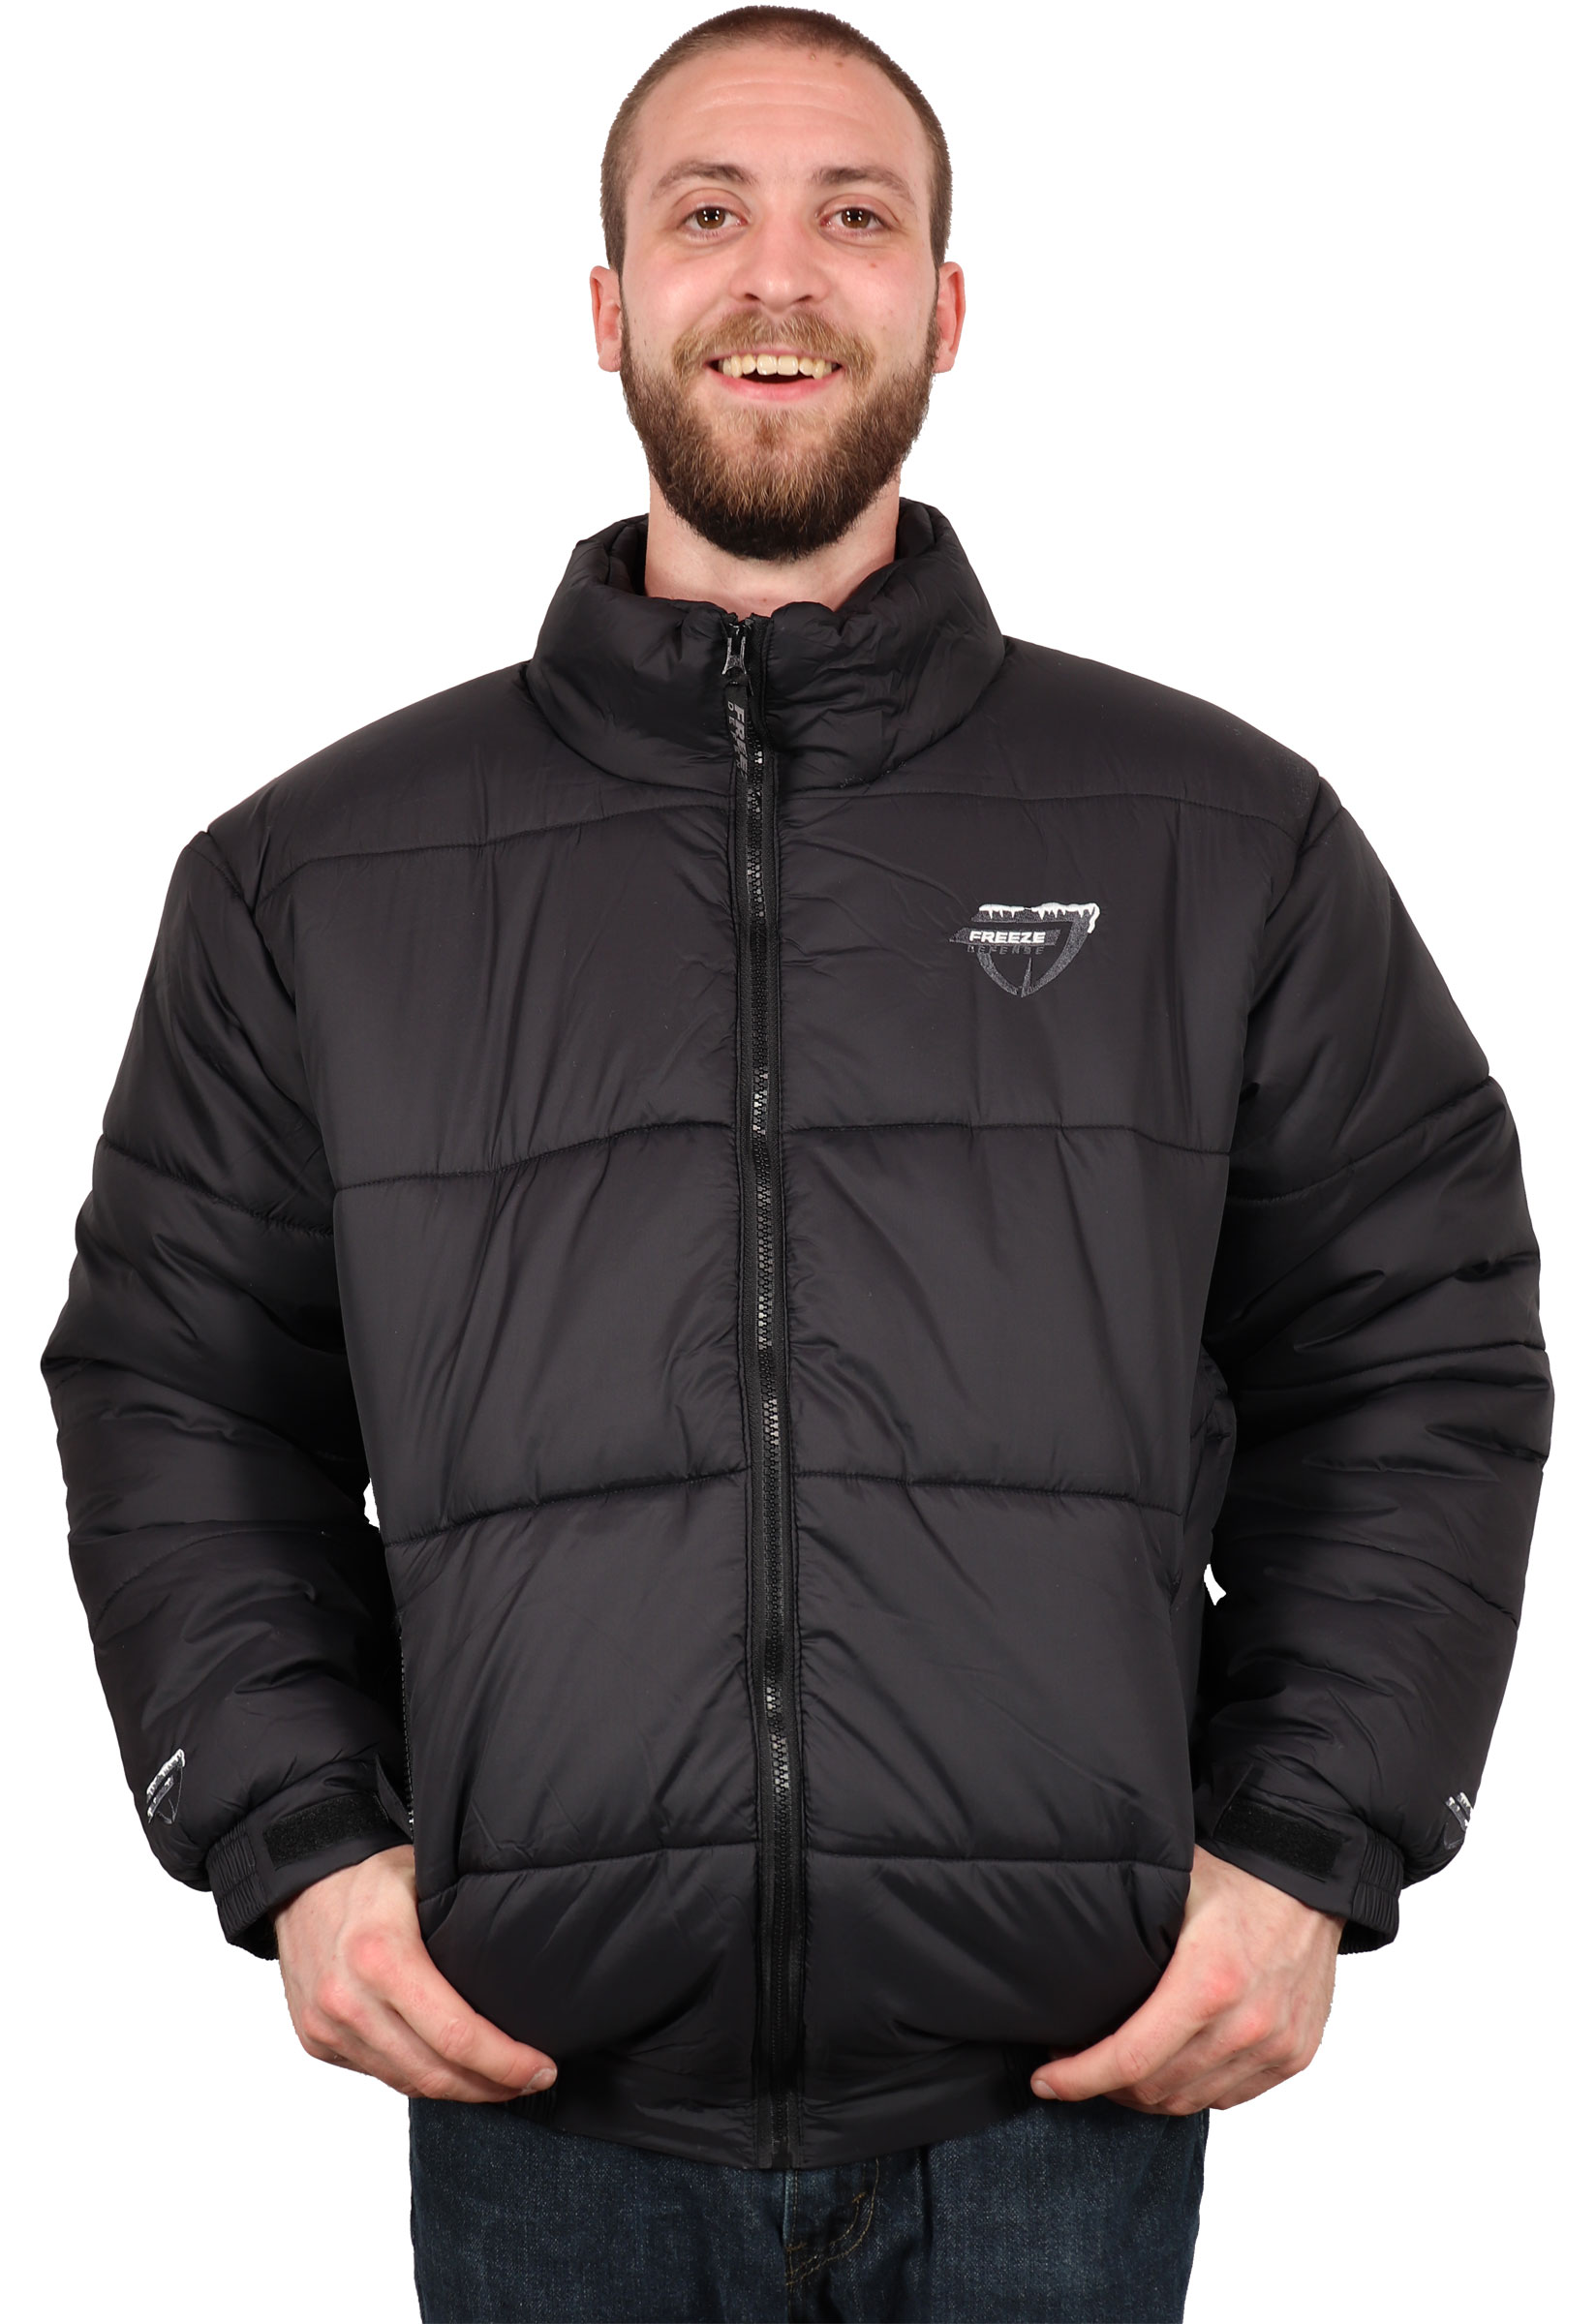 bc7065e4e5c2 Freeze Defense Men s Down Alternative Winter Jacket Coat. A classic style  puffer jacket that is ready to keep you warm in the cold.